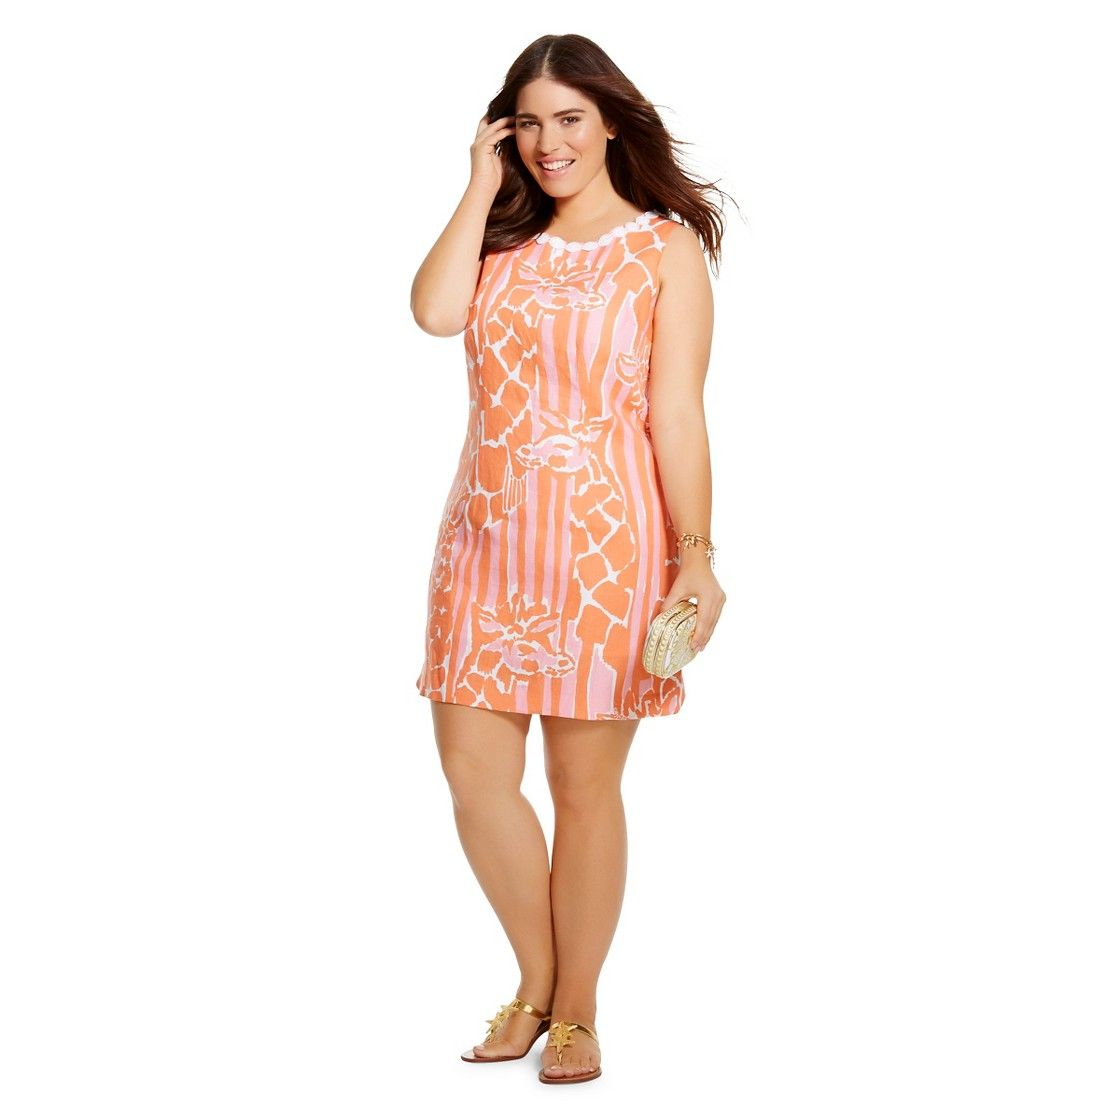 Lilly Pulitzer For Target Womens Plus Size Linen Shift Dress